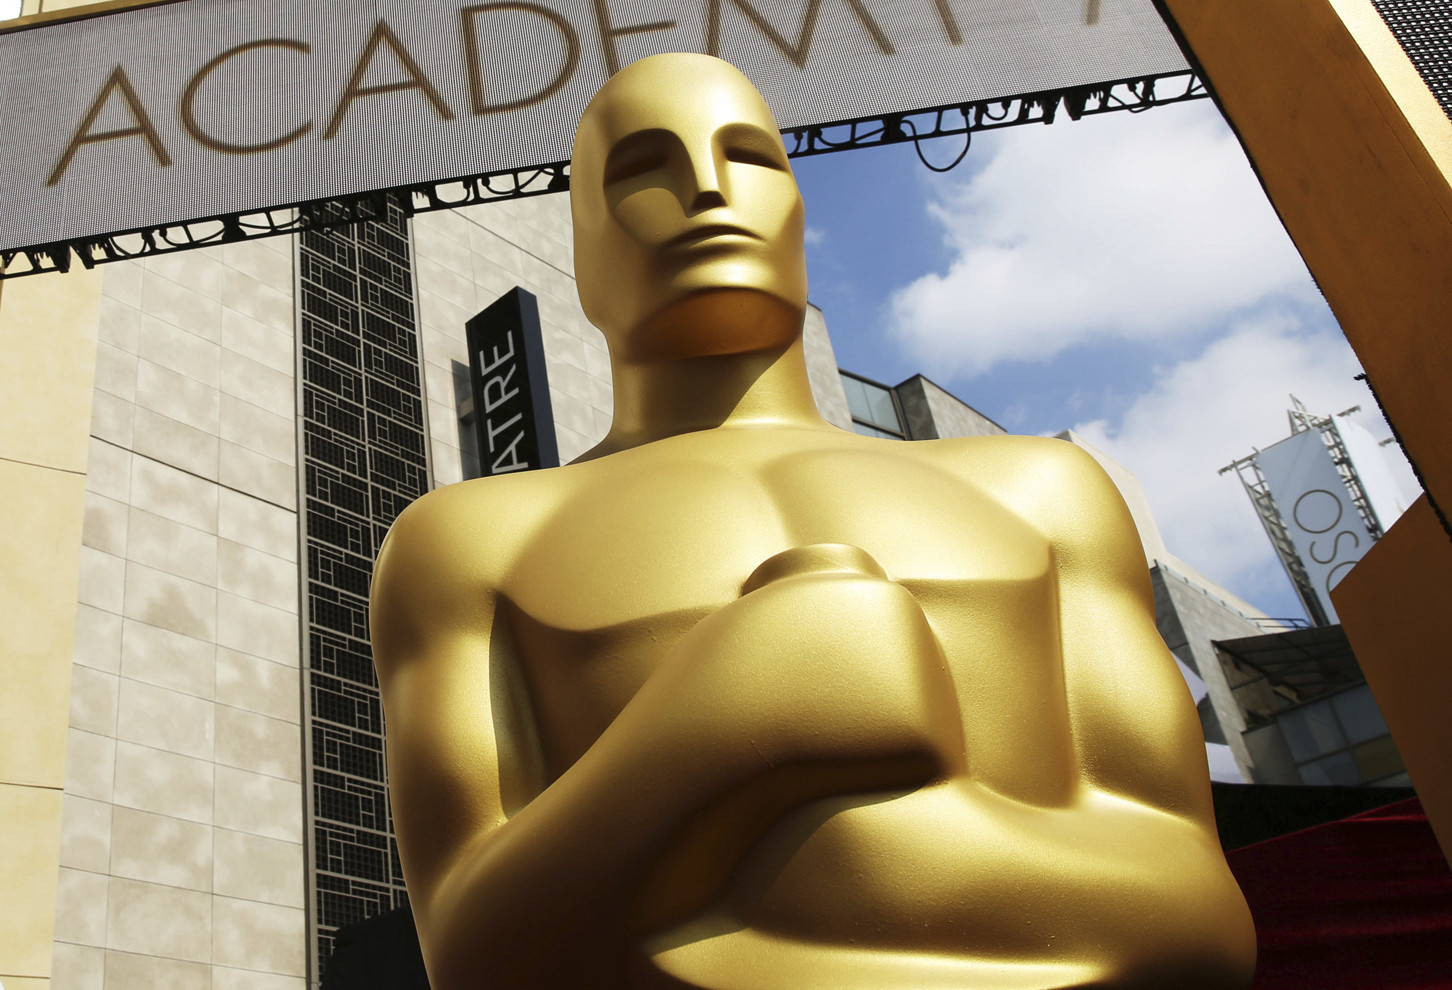 The Academy mistakenly tweets out list of Oscar predictions – then says the guesses aren't theirs